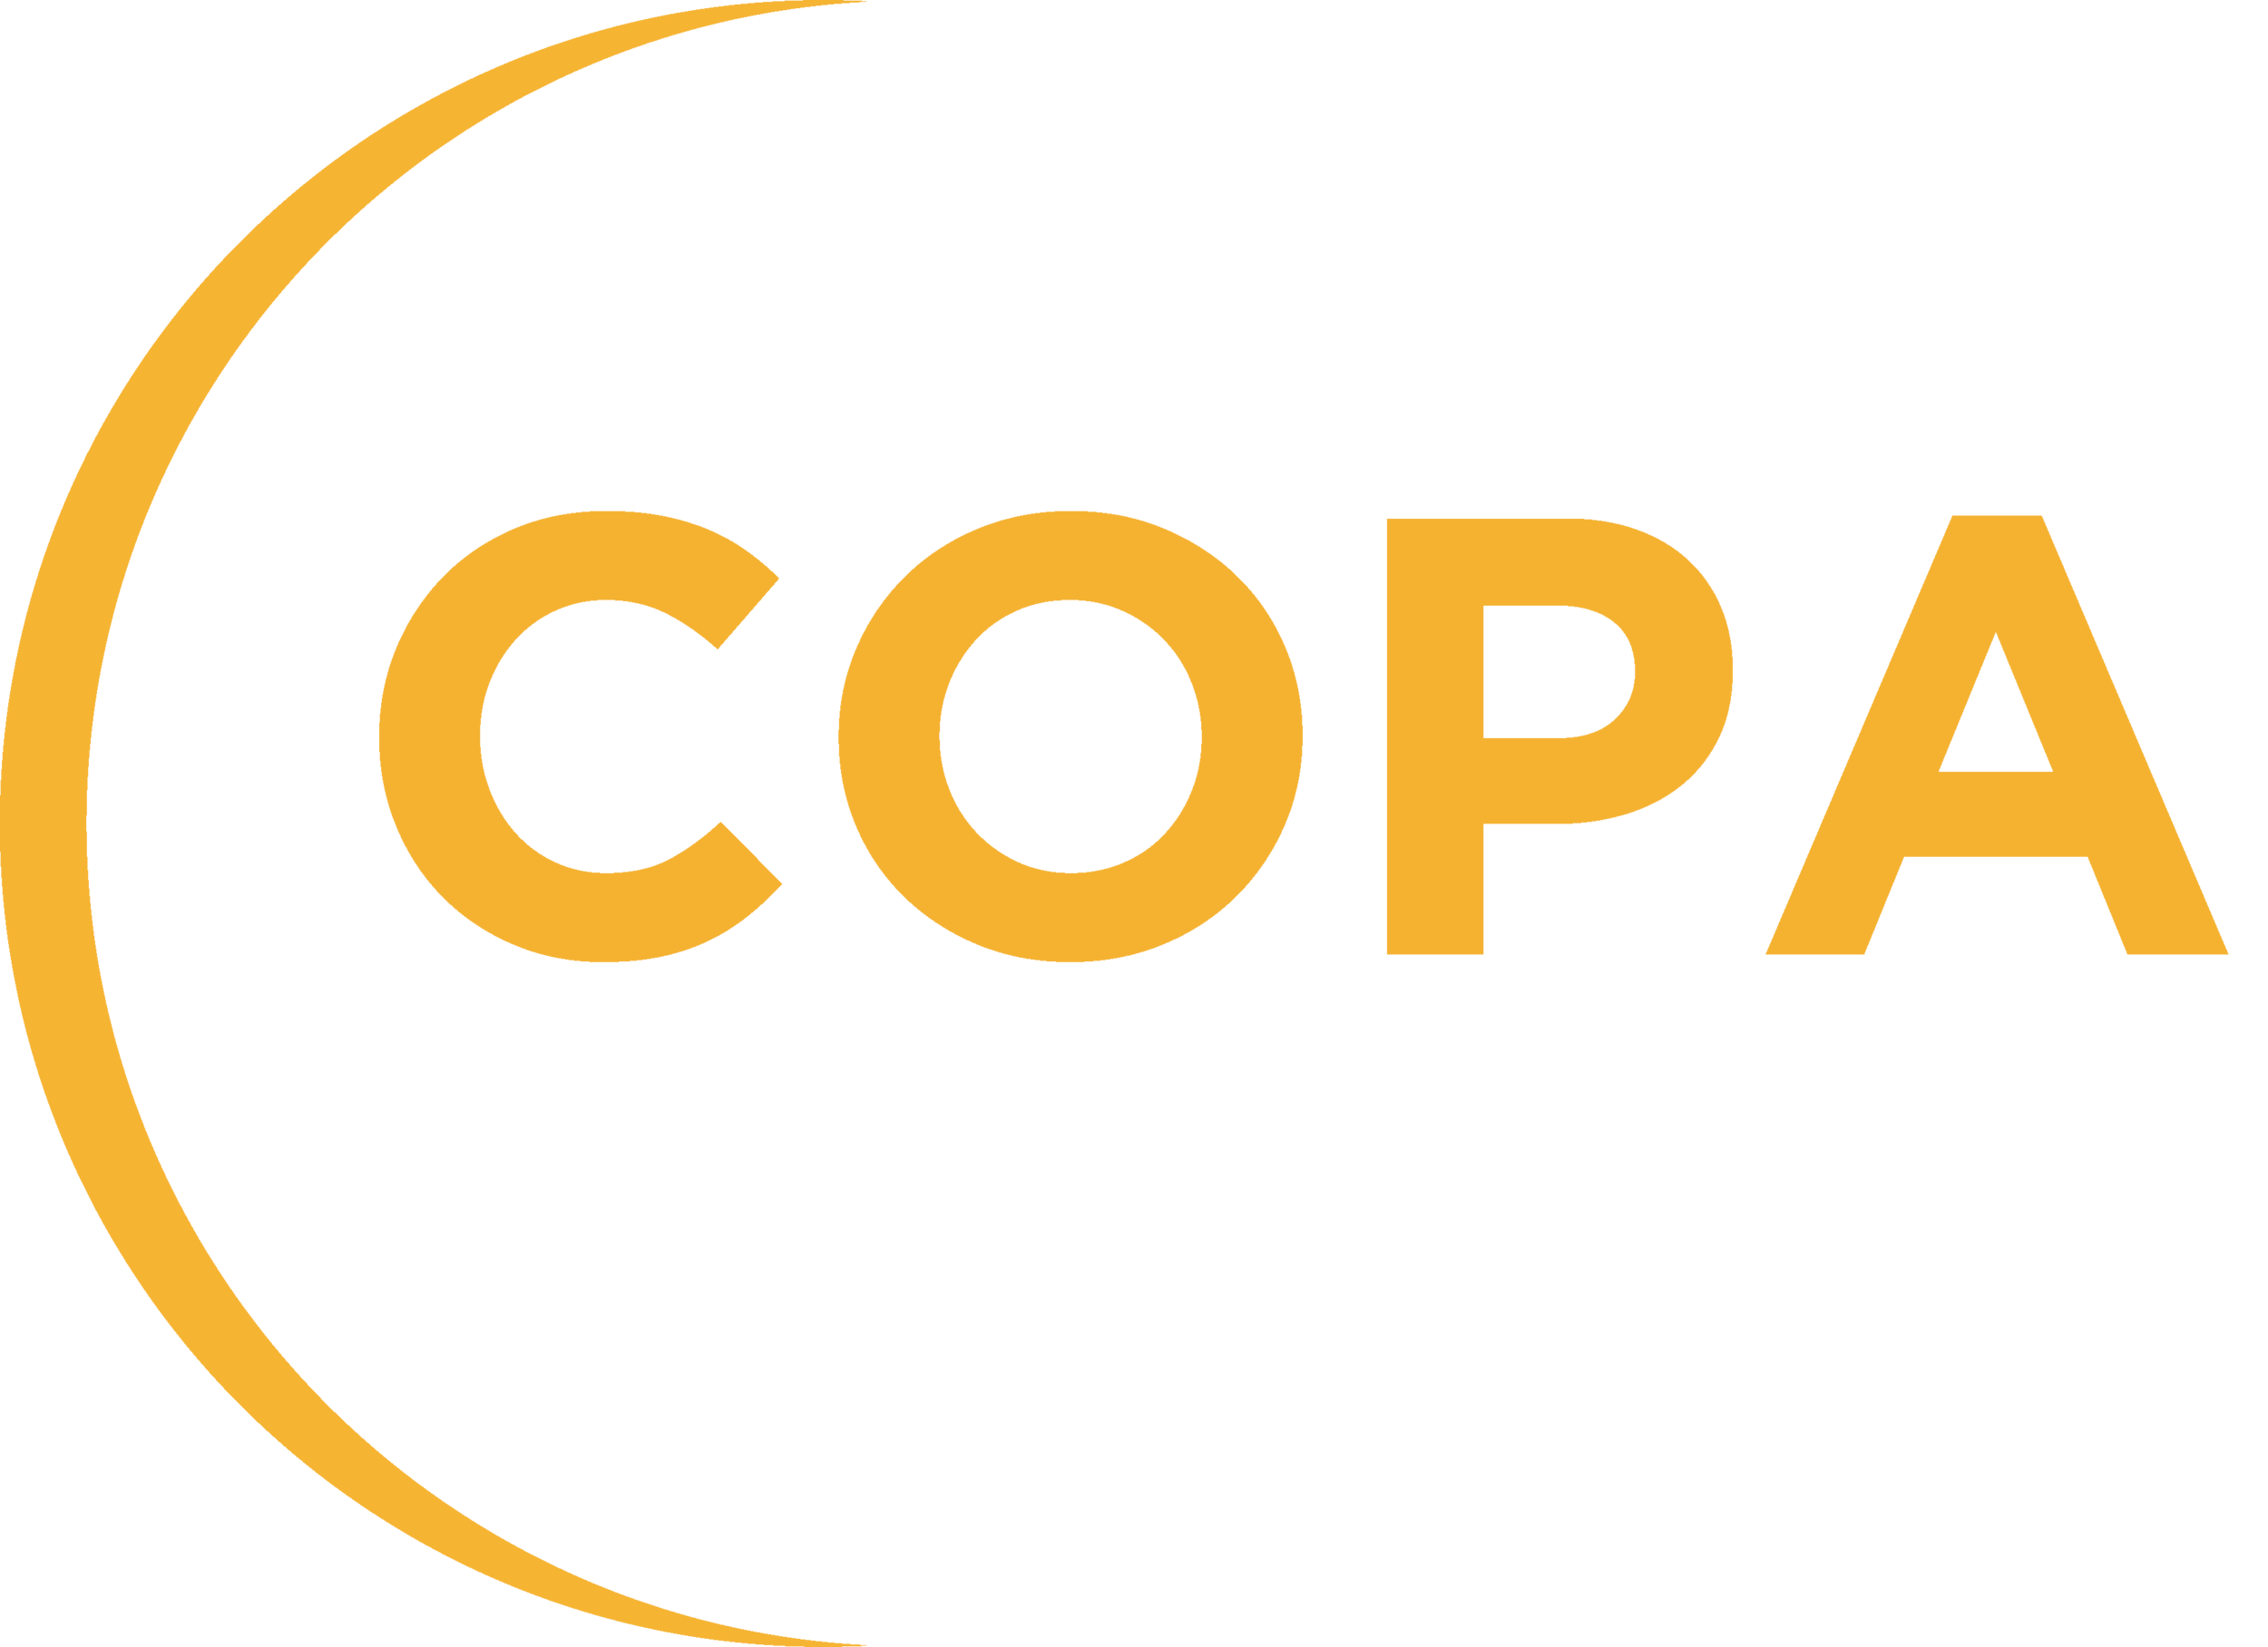 COPA-Business-Systems-White.png